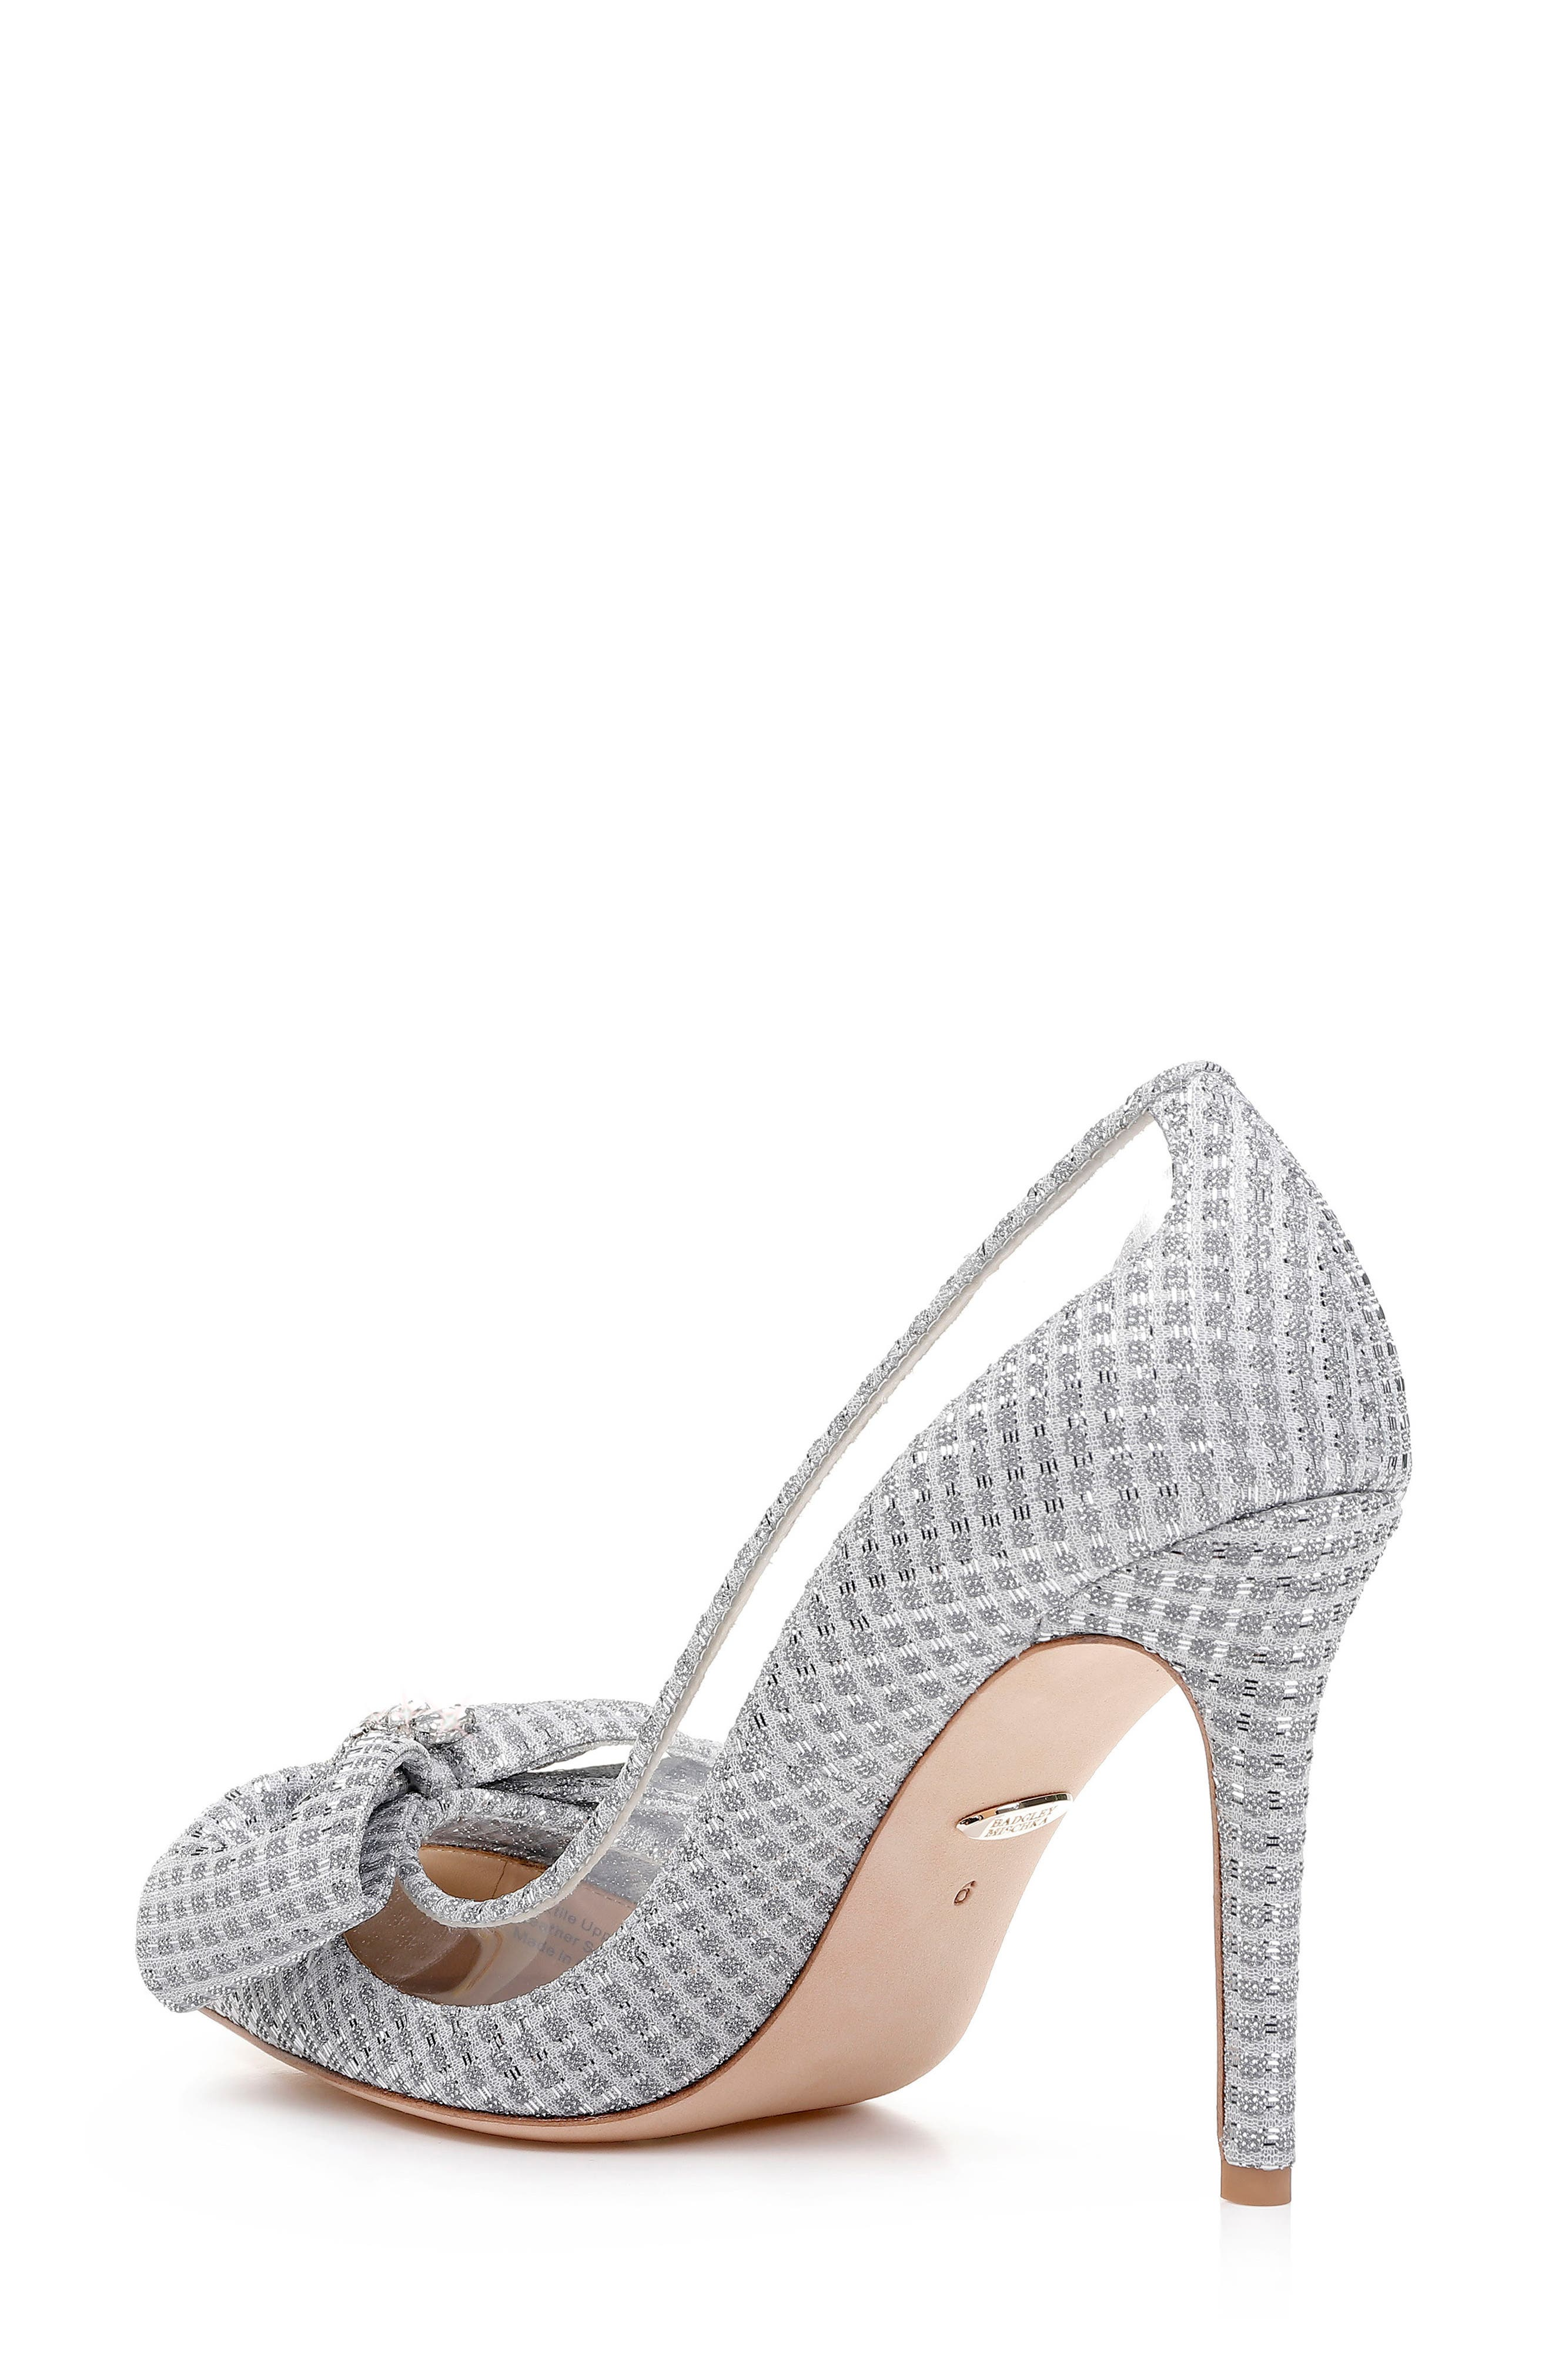 BADGLEY MISCHKA COLLECTION, Badgley Mischka Frances Bow Pump, Alternate thumbnail 2, color, SILVER GLITTER FABRIC